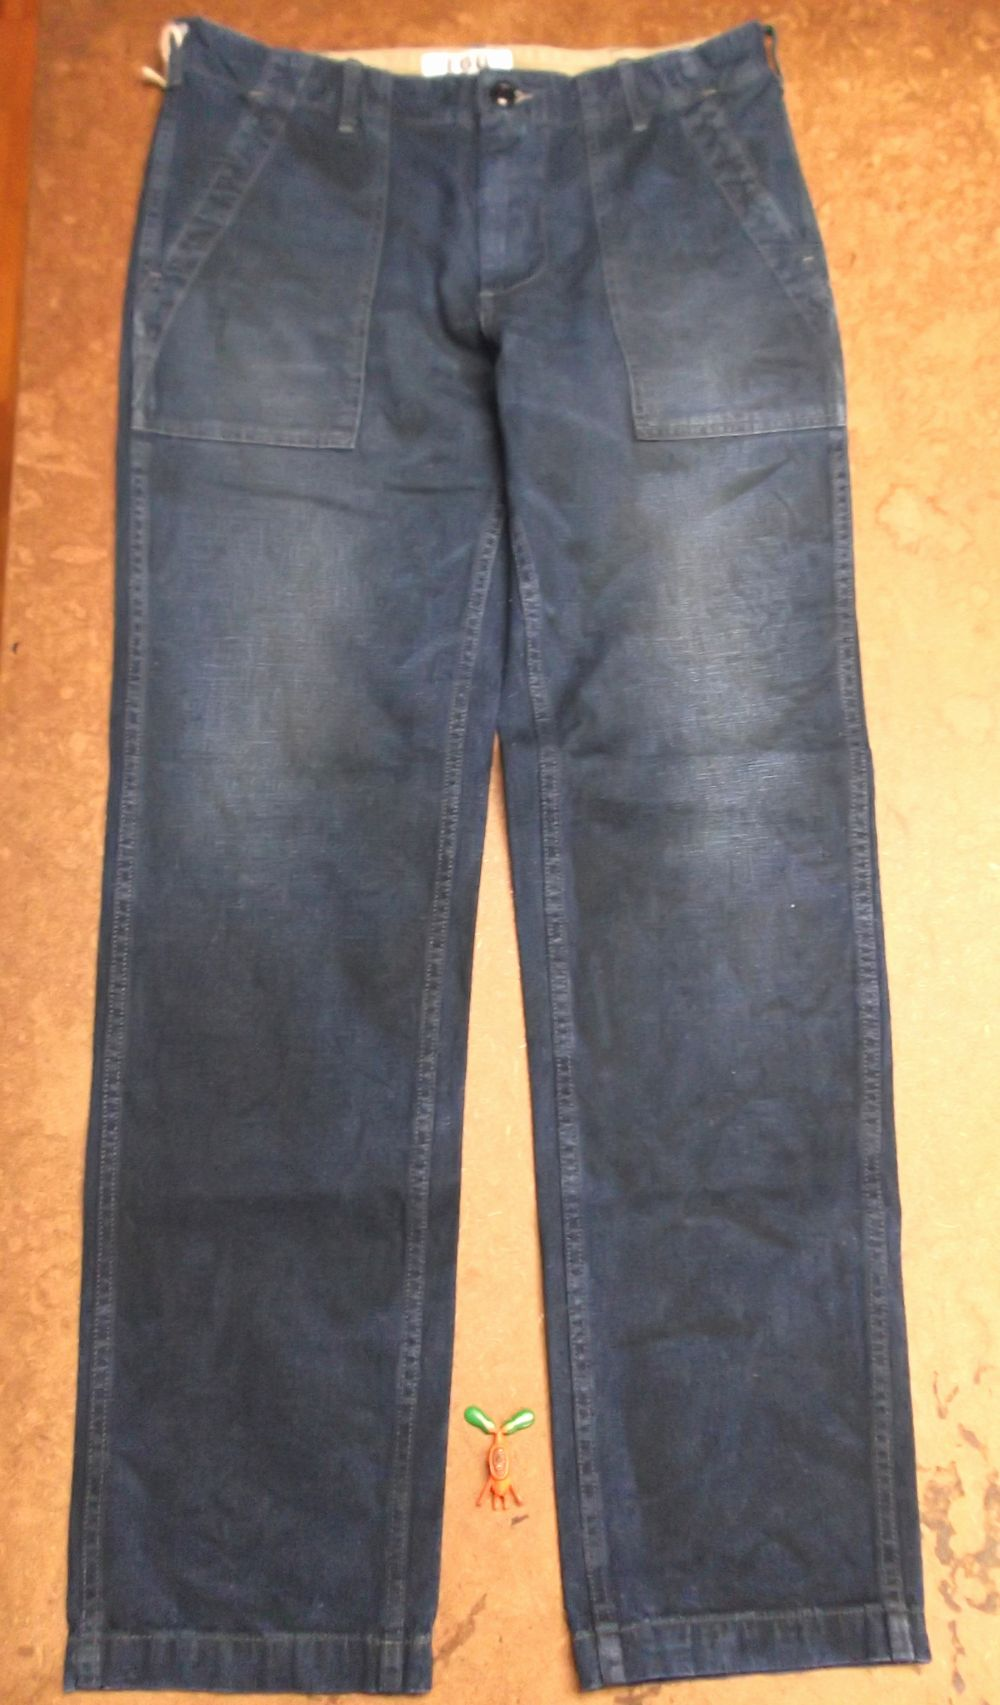 jeans1187-1